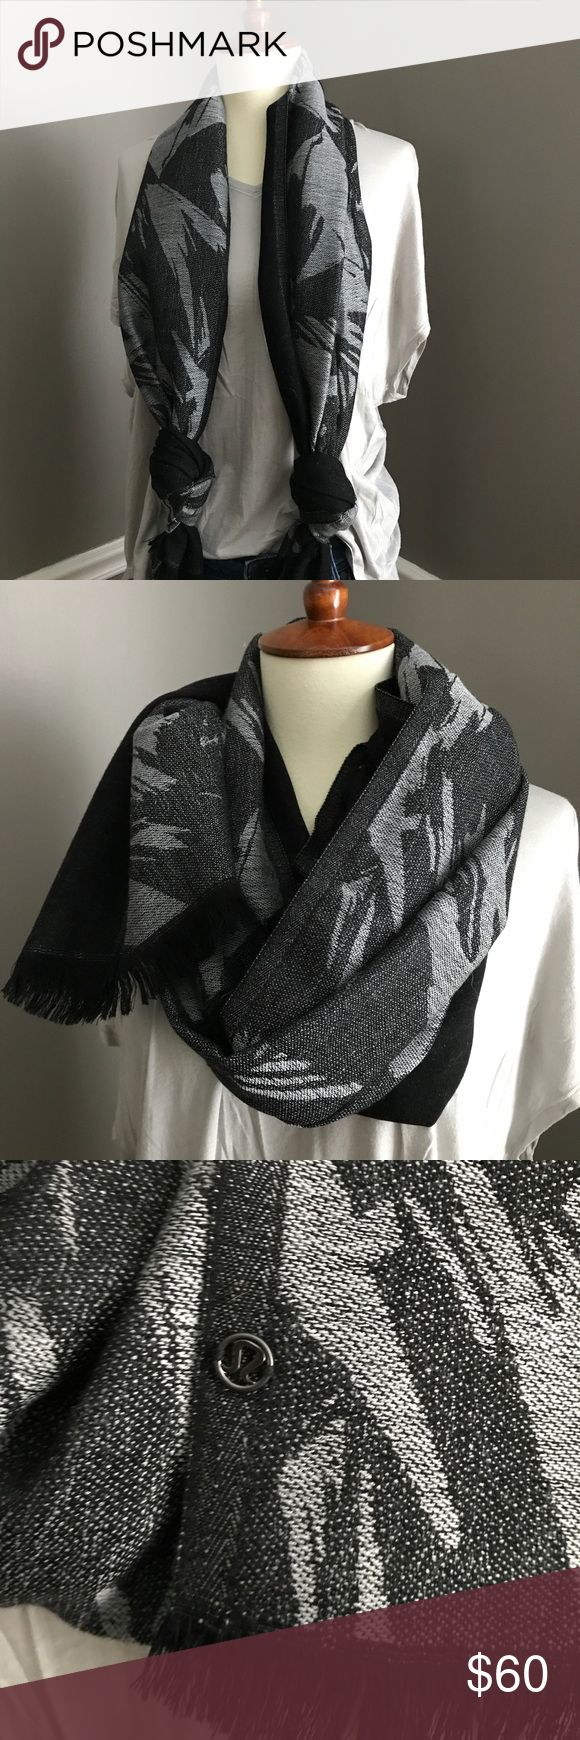 lululemon SCARF 💥💥 Excellent Used Condition. Small metal logo on the edge of the scarf. Print on one side, all black on the other. 48 inches in length and 27 inches wide. lululemon athletica Accessories Scarves & Wraps